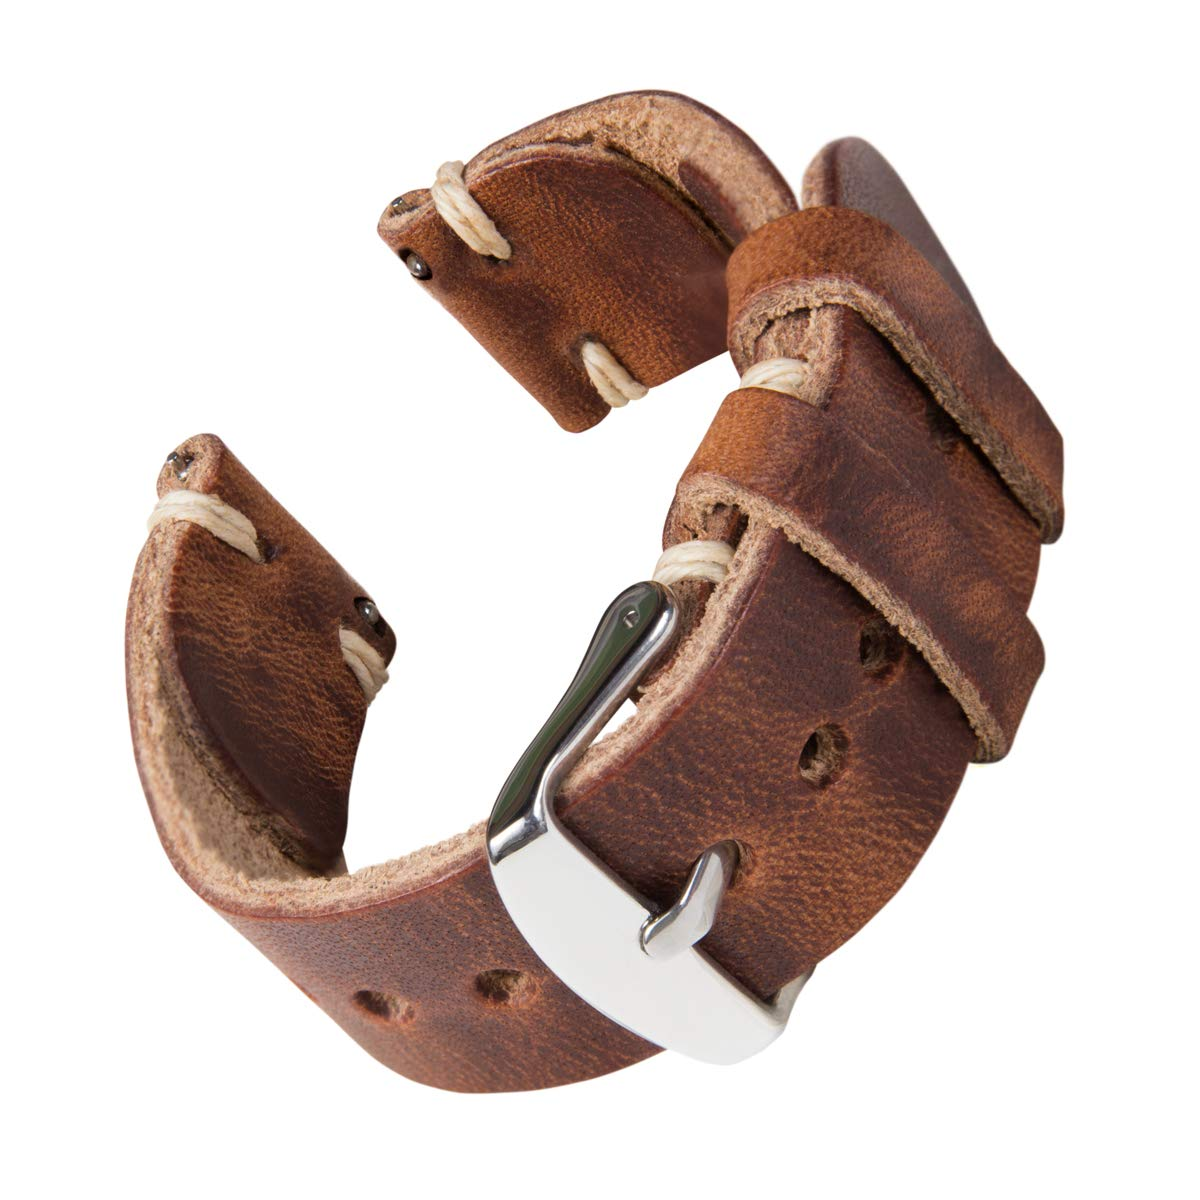 Archer Watch Straps - Handmade Horween Leather Quick Release Replacement Watch Bands for Men and Women, Watches and Smartwatches (English Tan/Natural, 22mm) by Archer Watch Straps